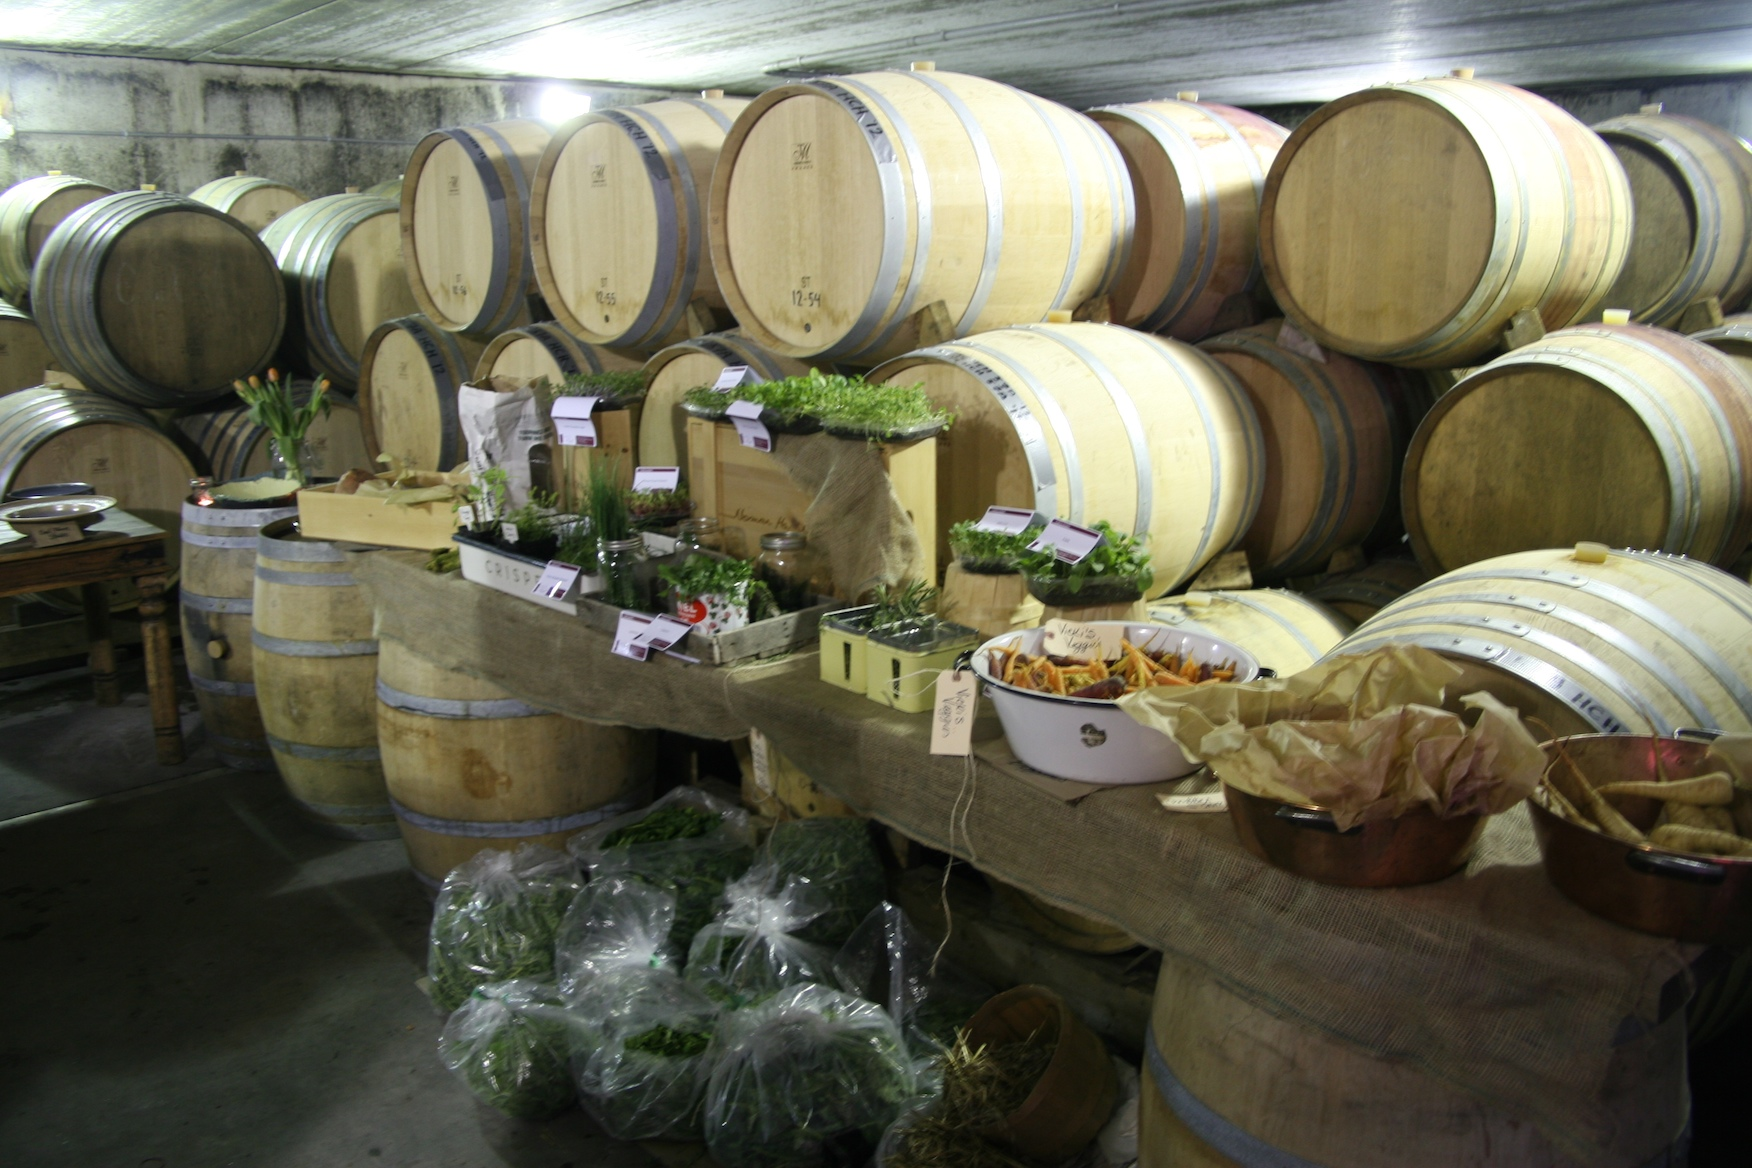 The barrel chamber temporarily transforms into the produce department for all the chefs...